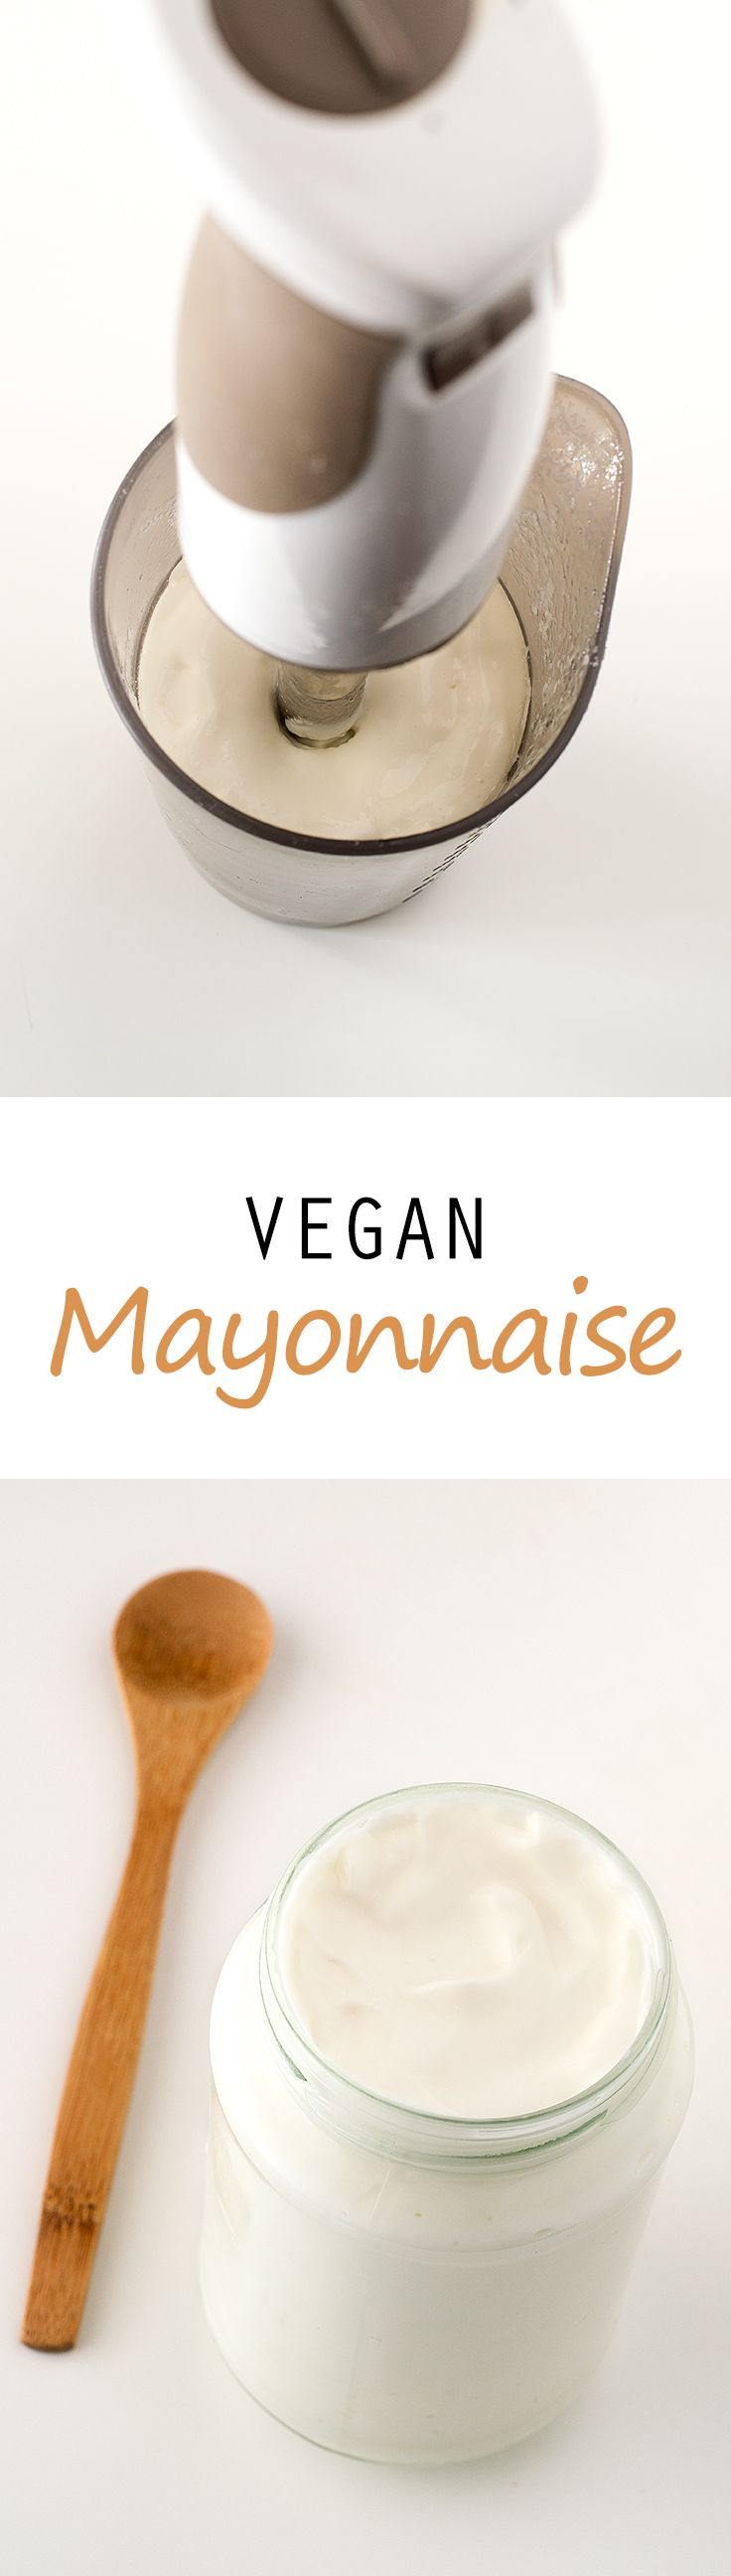 Vegan Mayonnaise - vegan and gluten-free | Best Diets to Lose Weight. To learn more on the website: http://track.ultra-slim.pl/product/Ultra-Slim/?pid=121&uid=24516